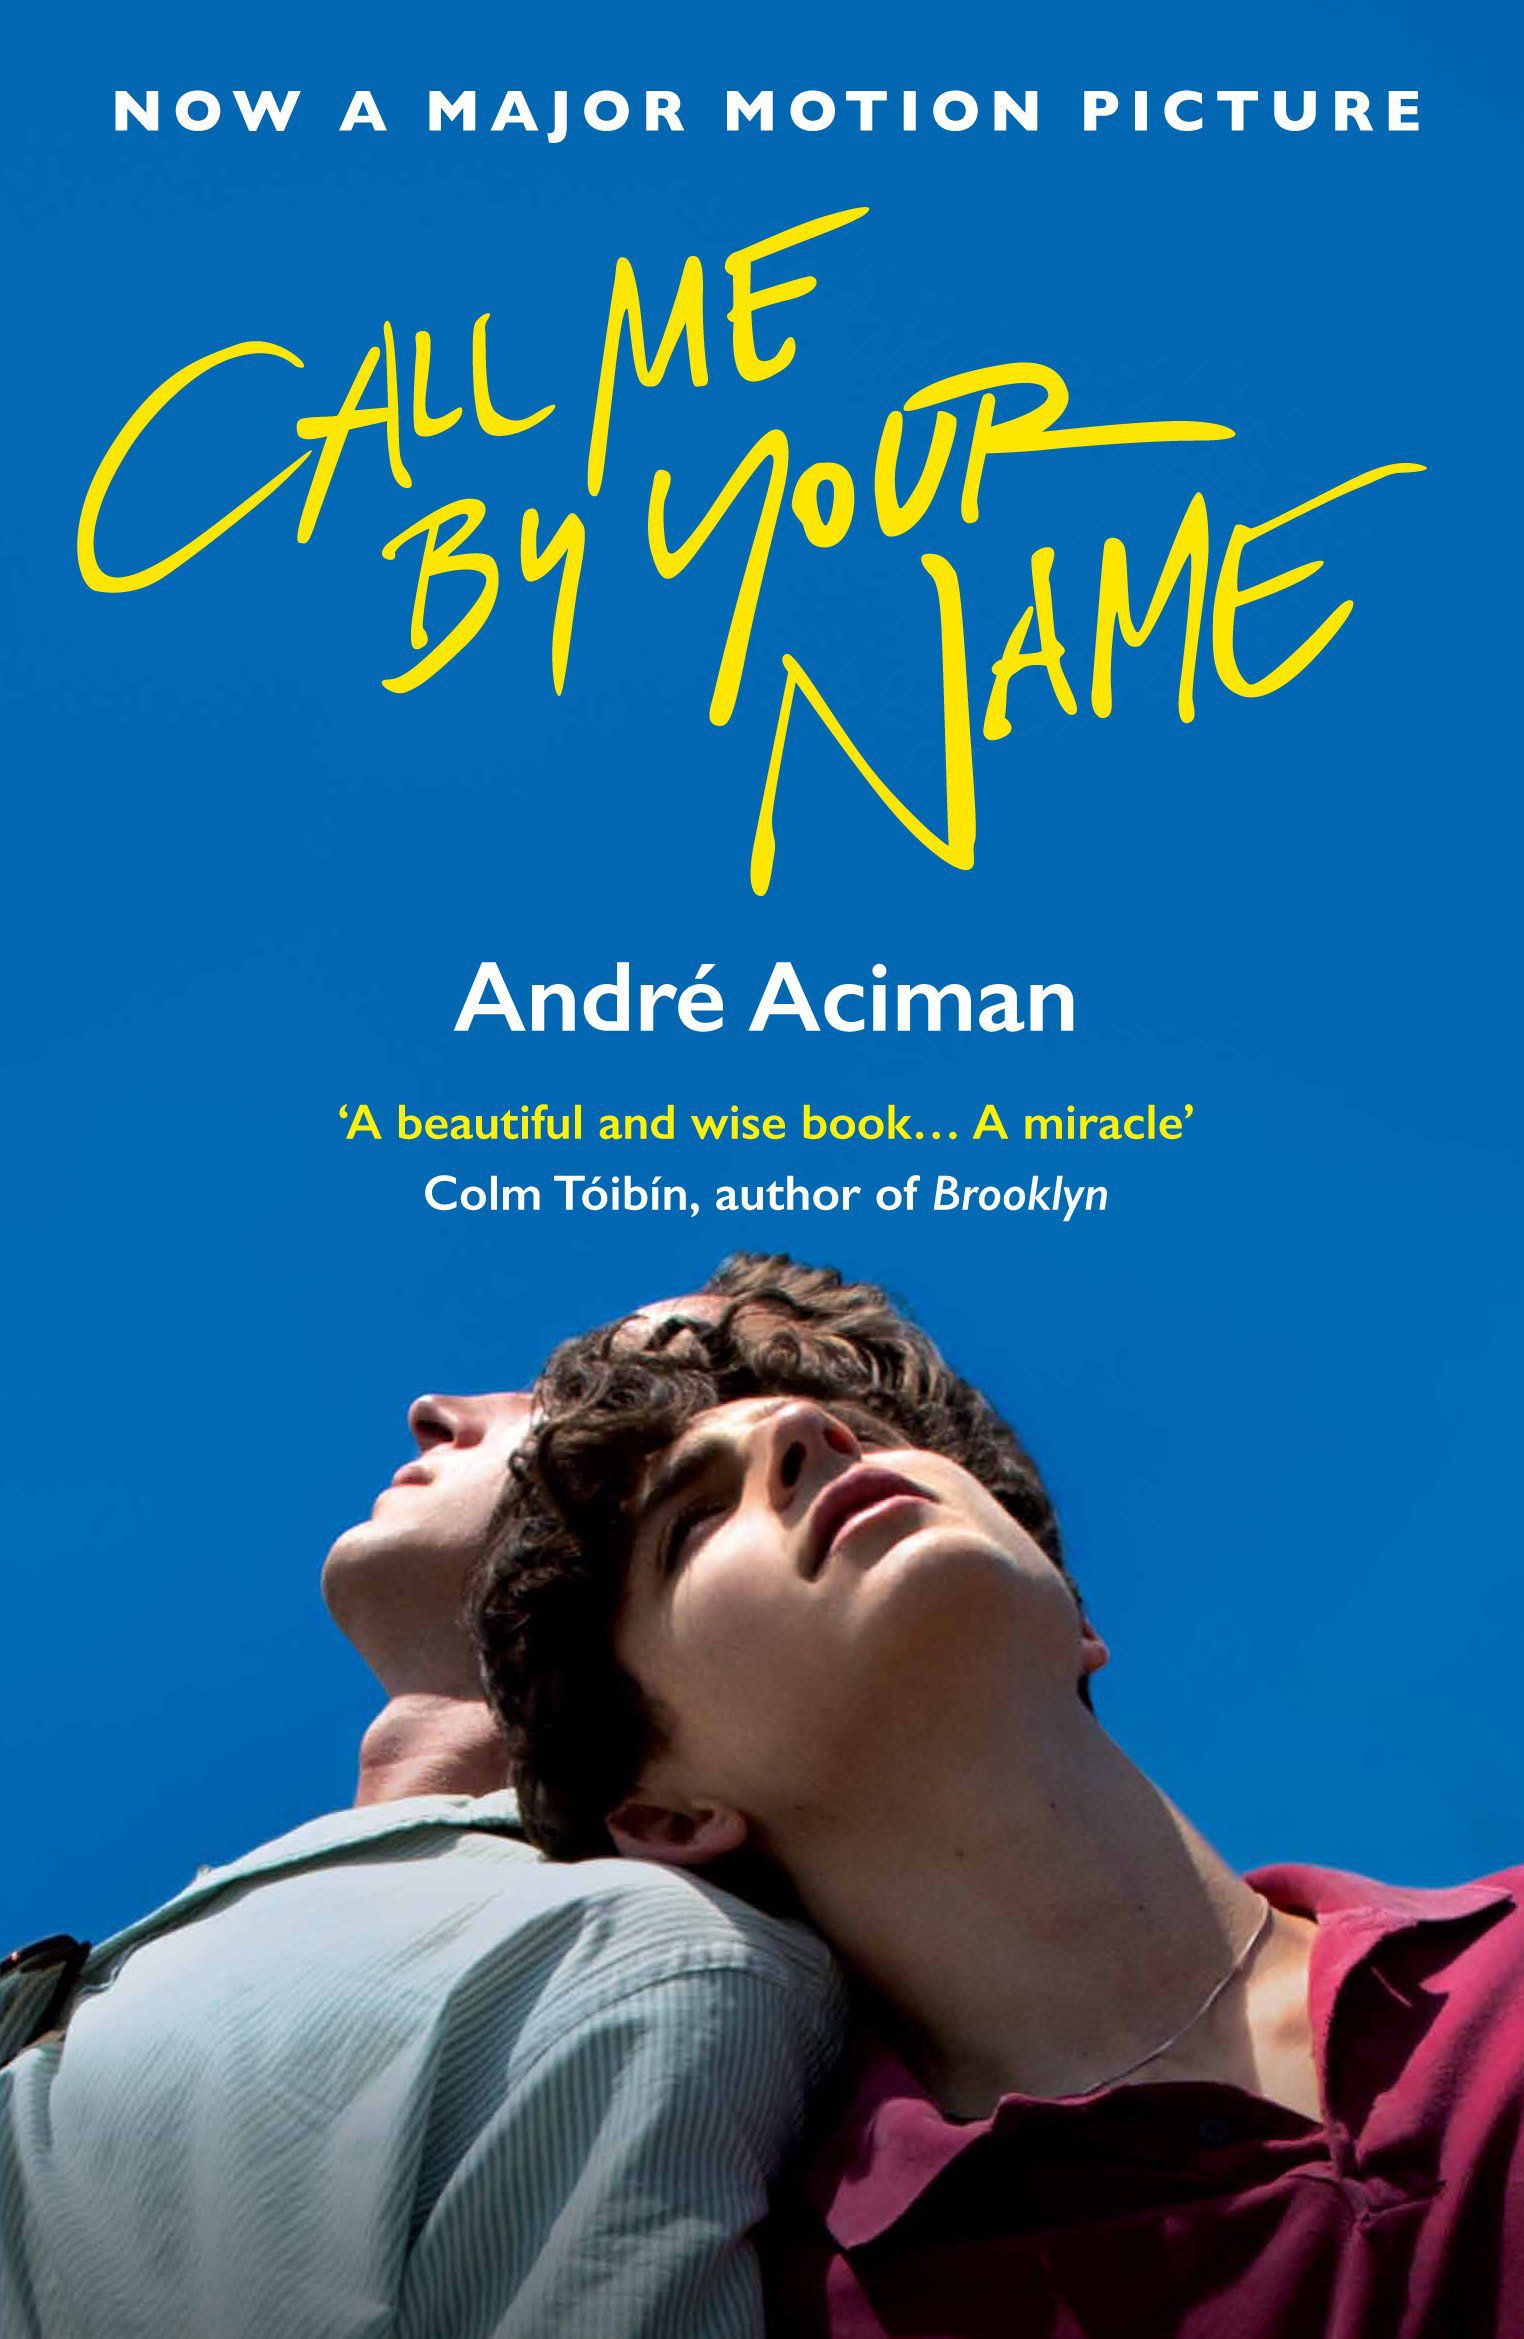 call me by your name by andre aciman.jpg.optimal